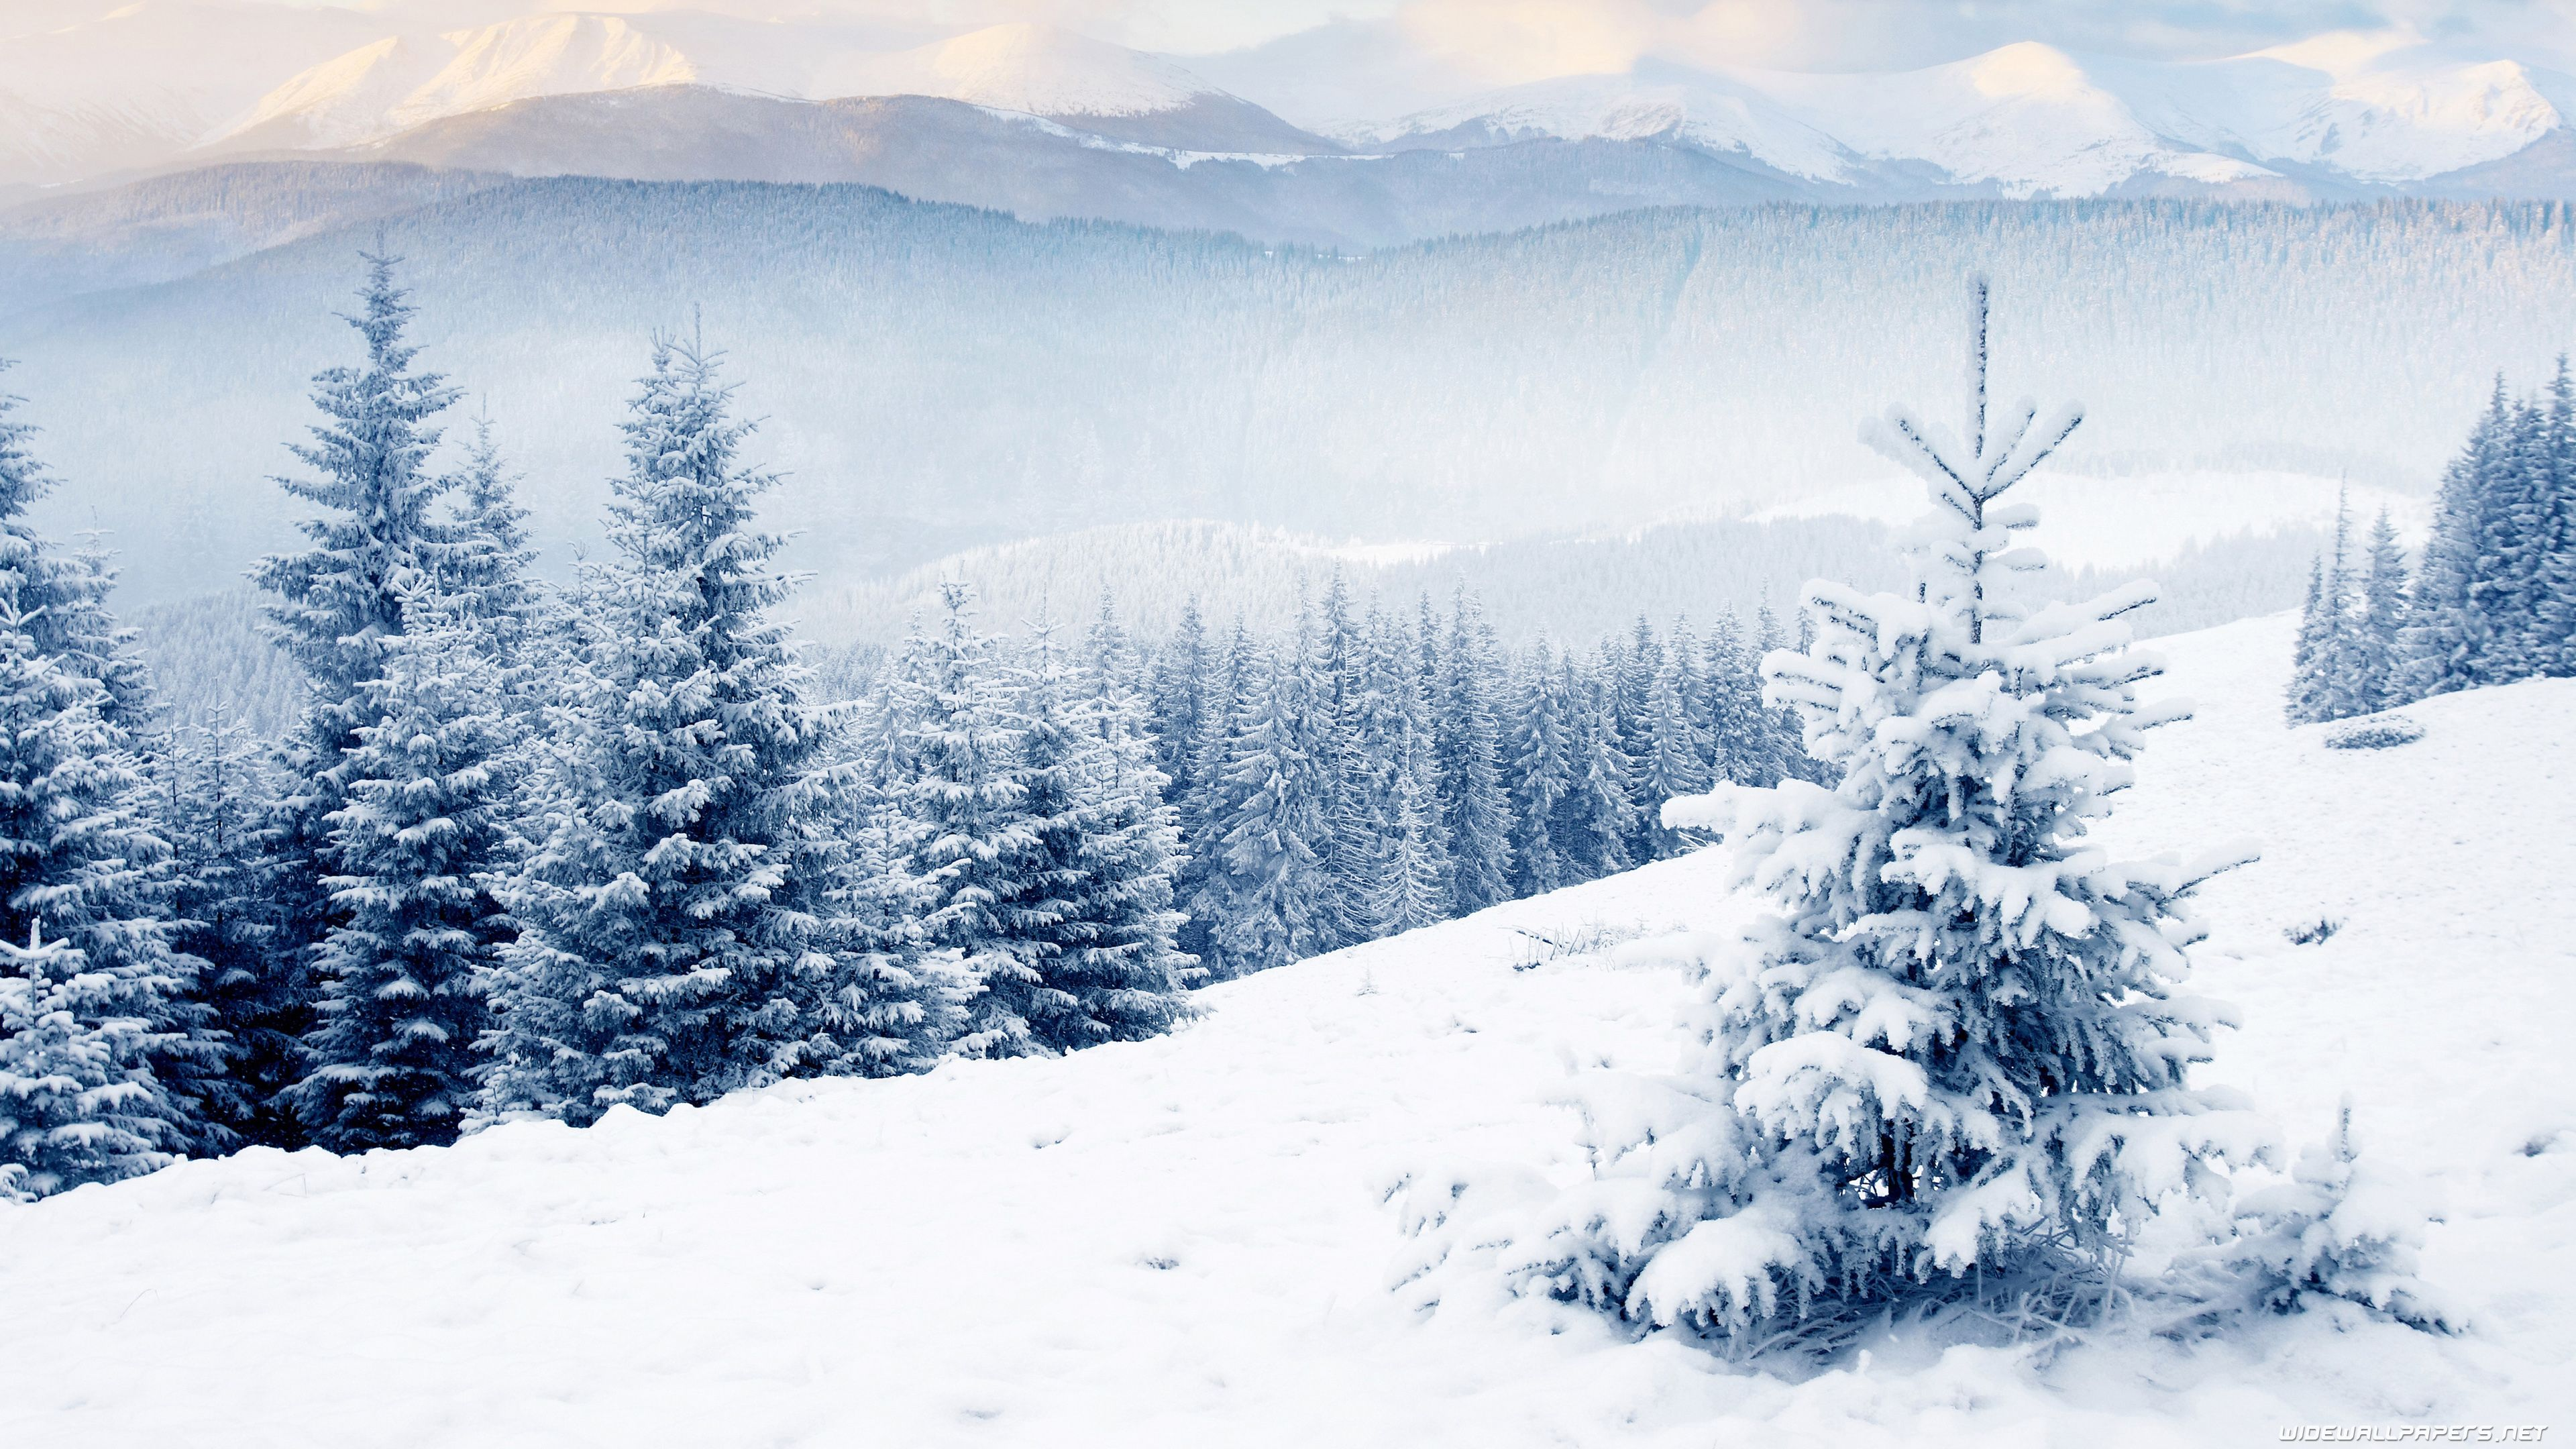 Winter Hd Desktop Wallpapers Top Free Winter Hd Desktop